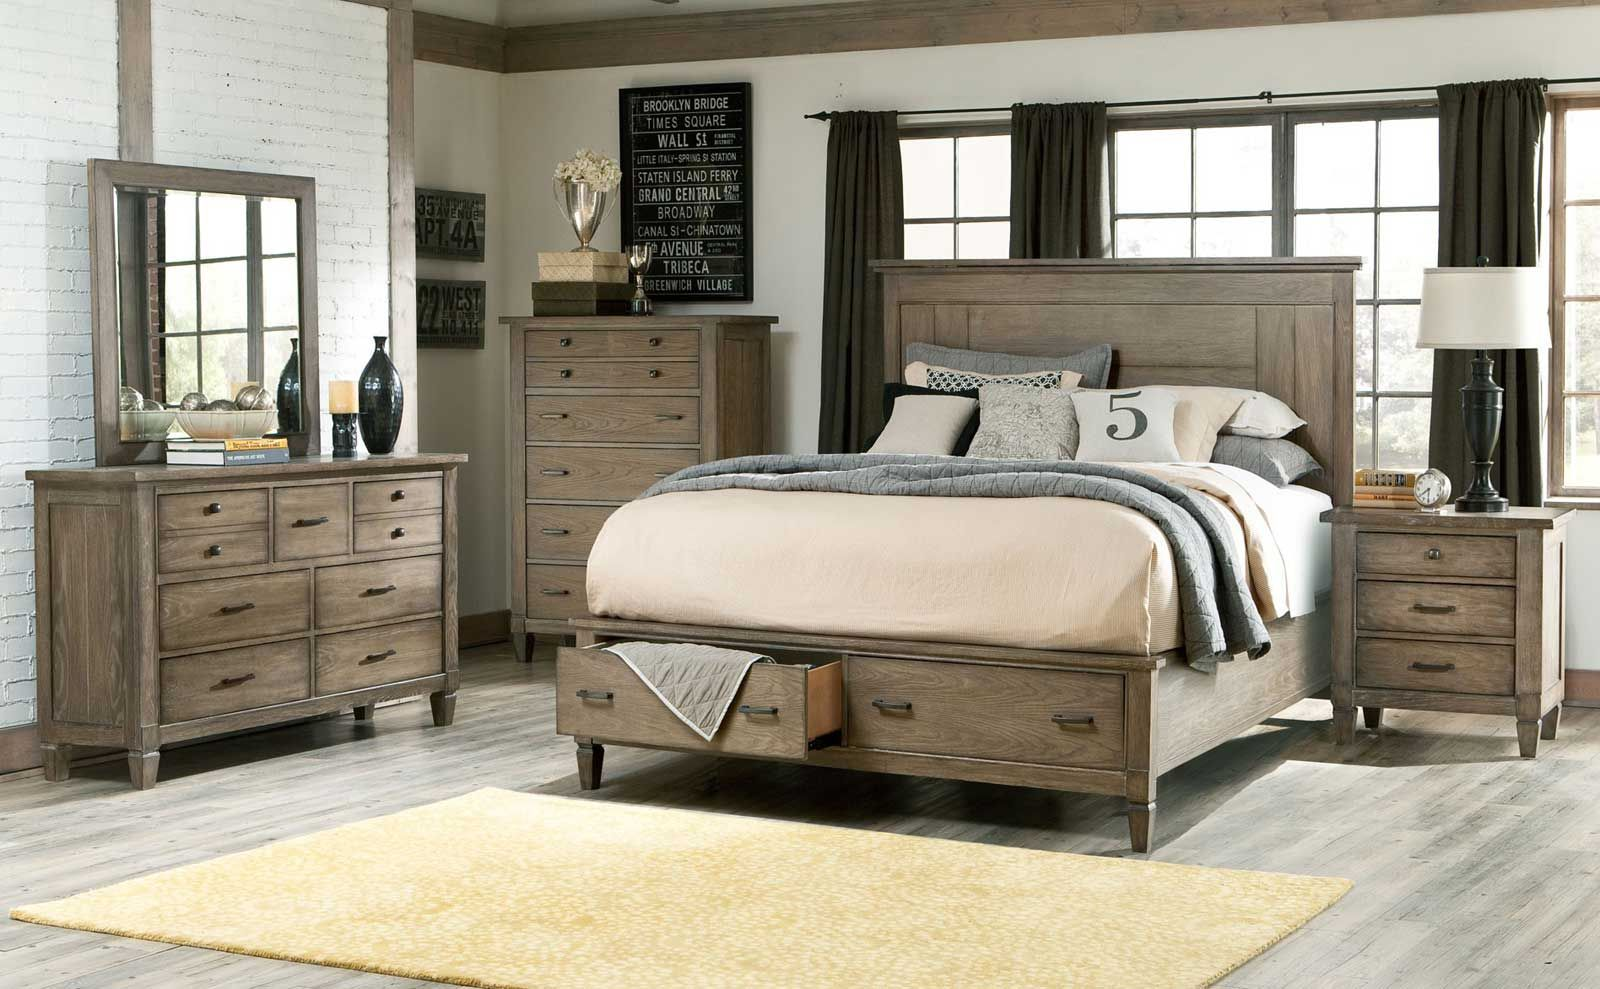 White rustic bedroom furniture - Best 20 Rustic Bedroom Furniture Sets Ideas On Pinterest Rustic Bedroom Furniture Rustic Wood Bed And Rustic Bedroom Sets